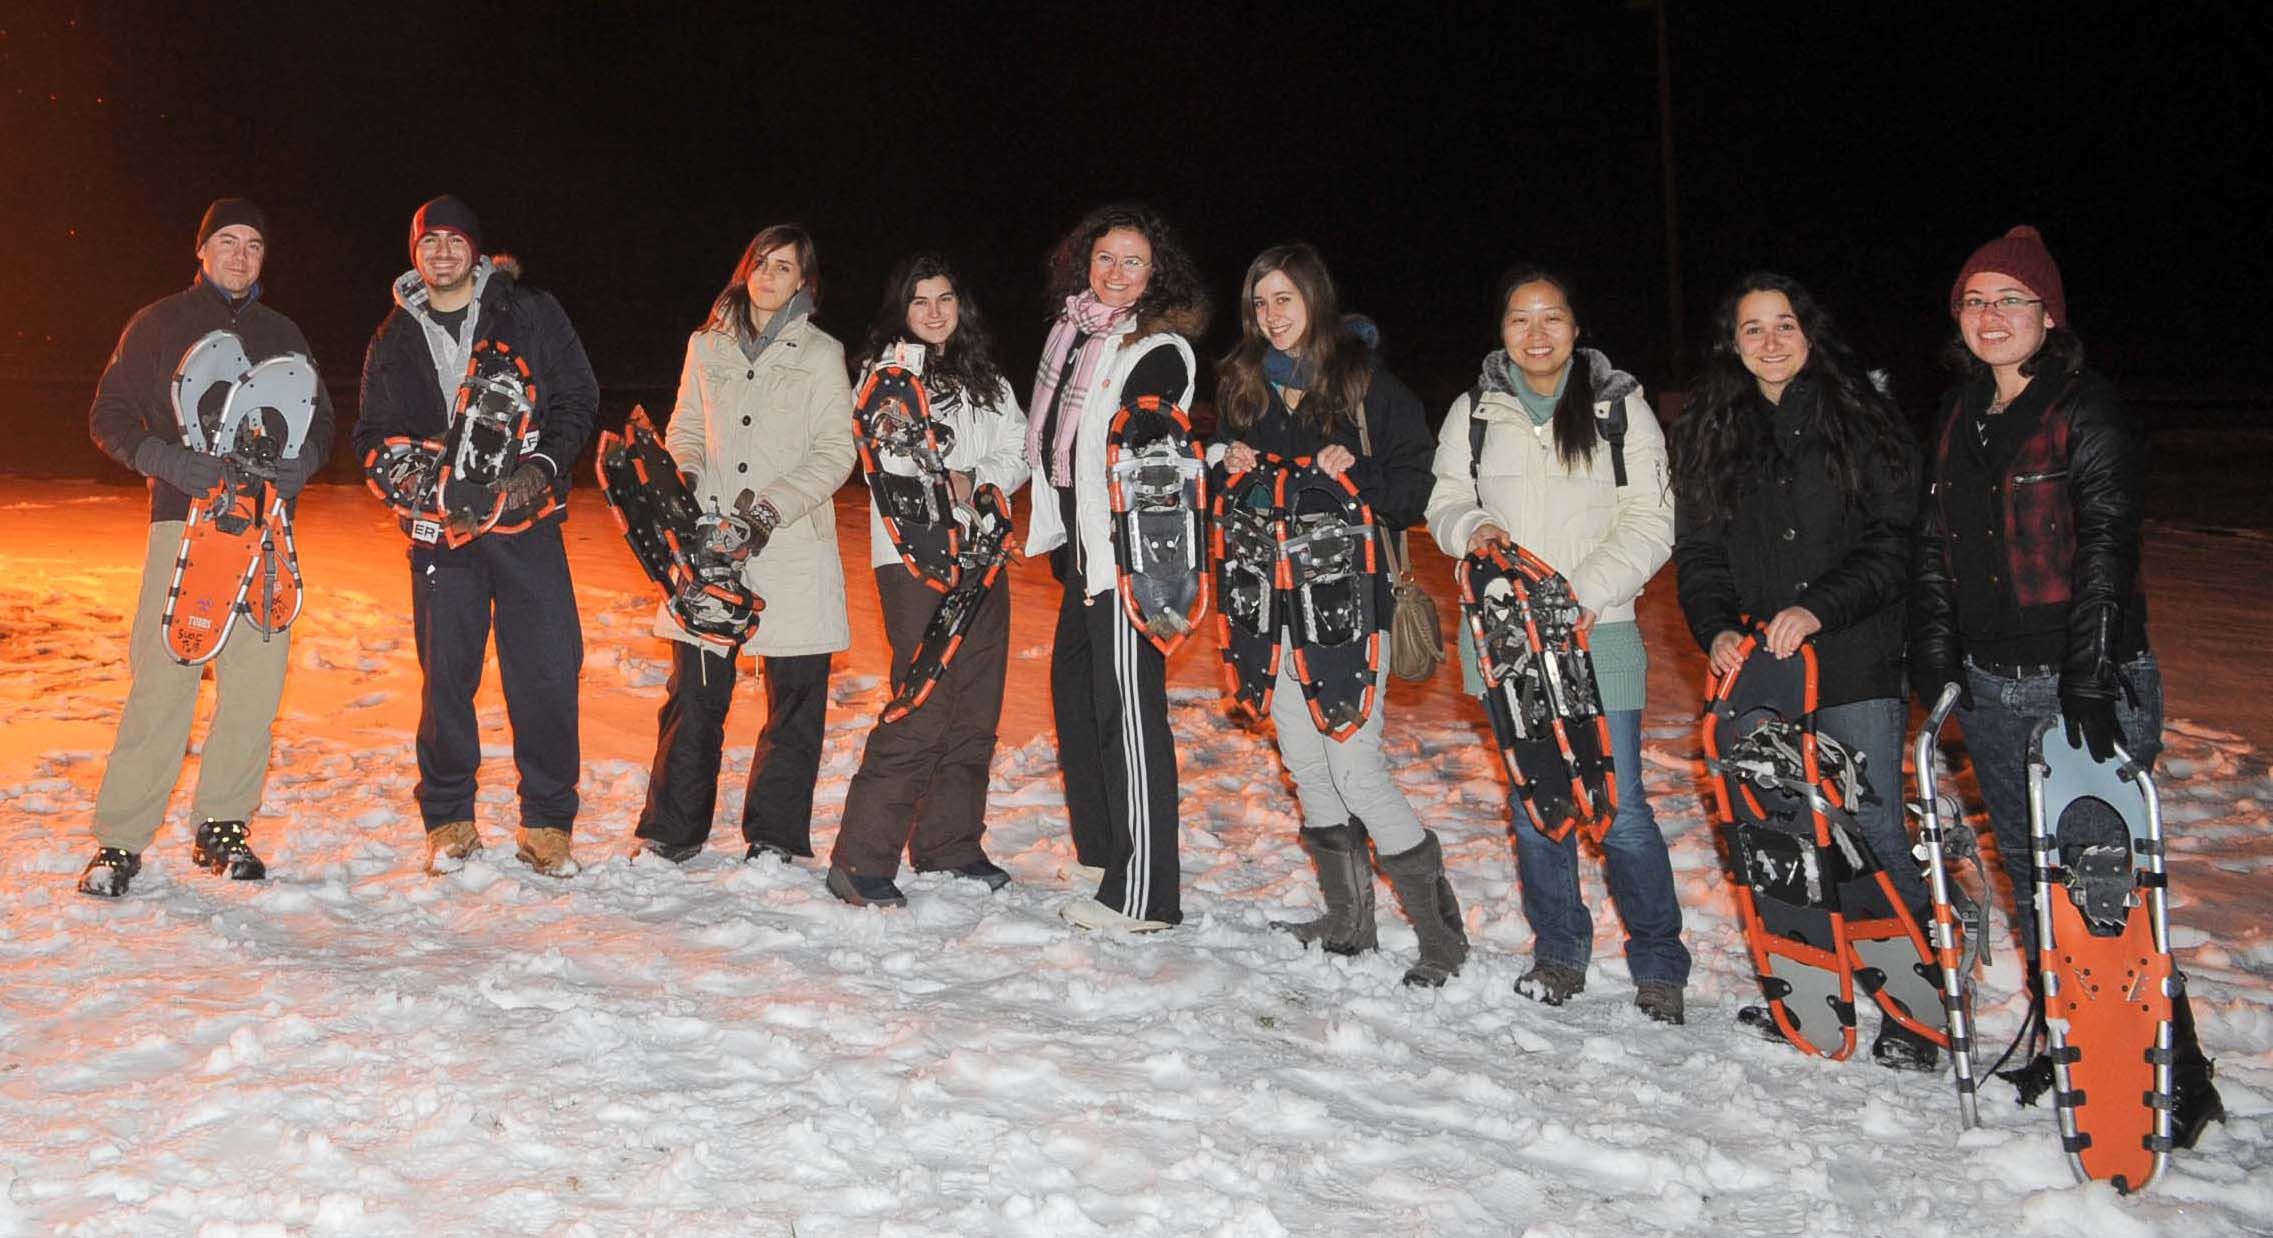 Group of students posing with snowshoes